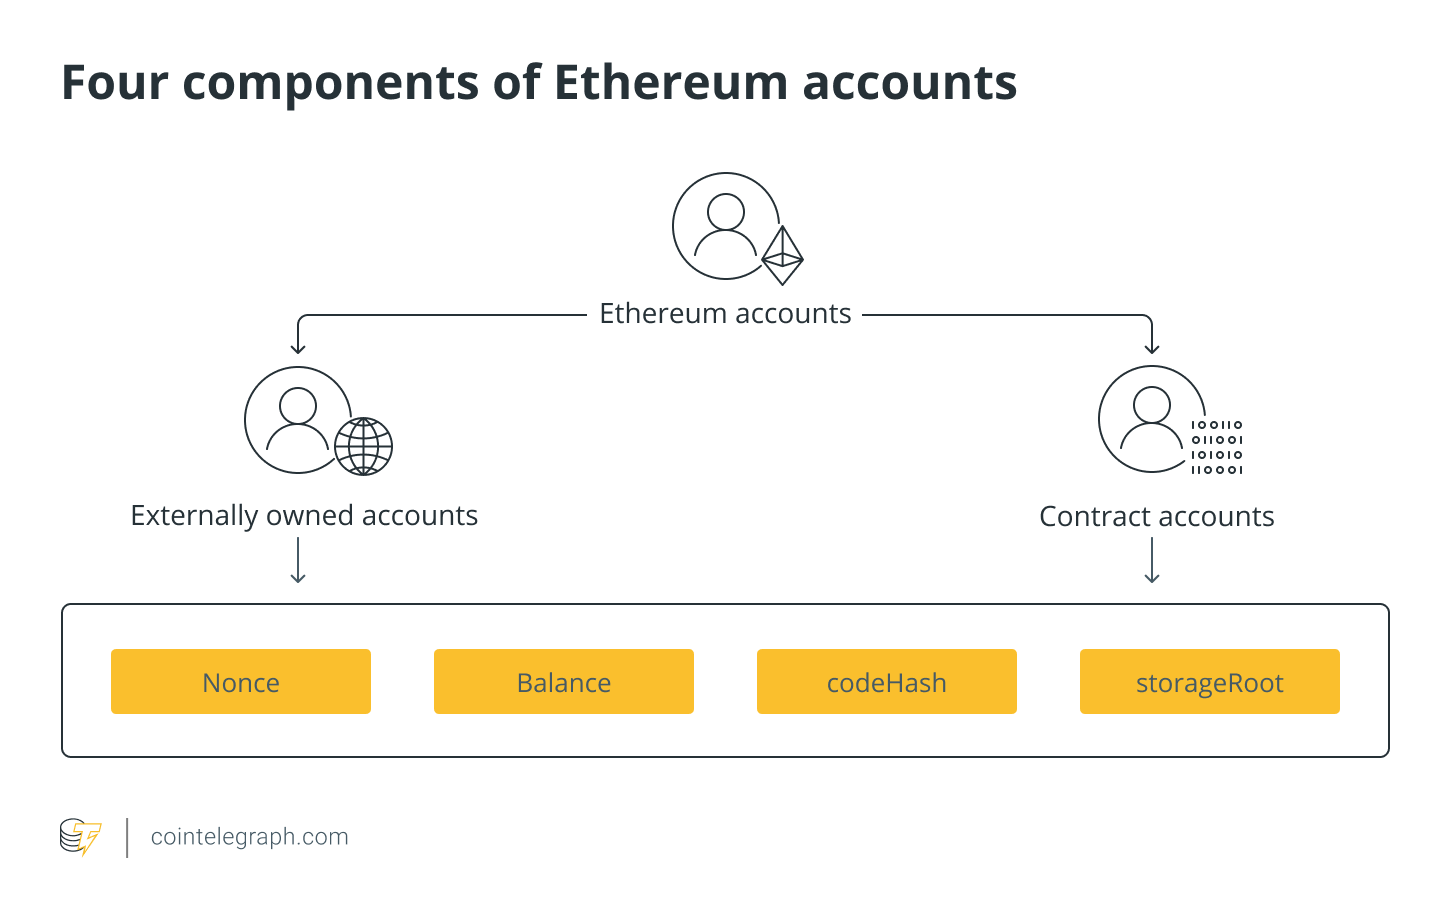 Four components of Ethereum accounts